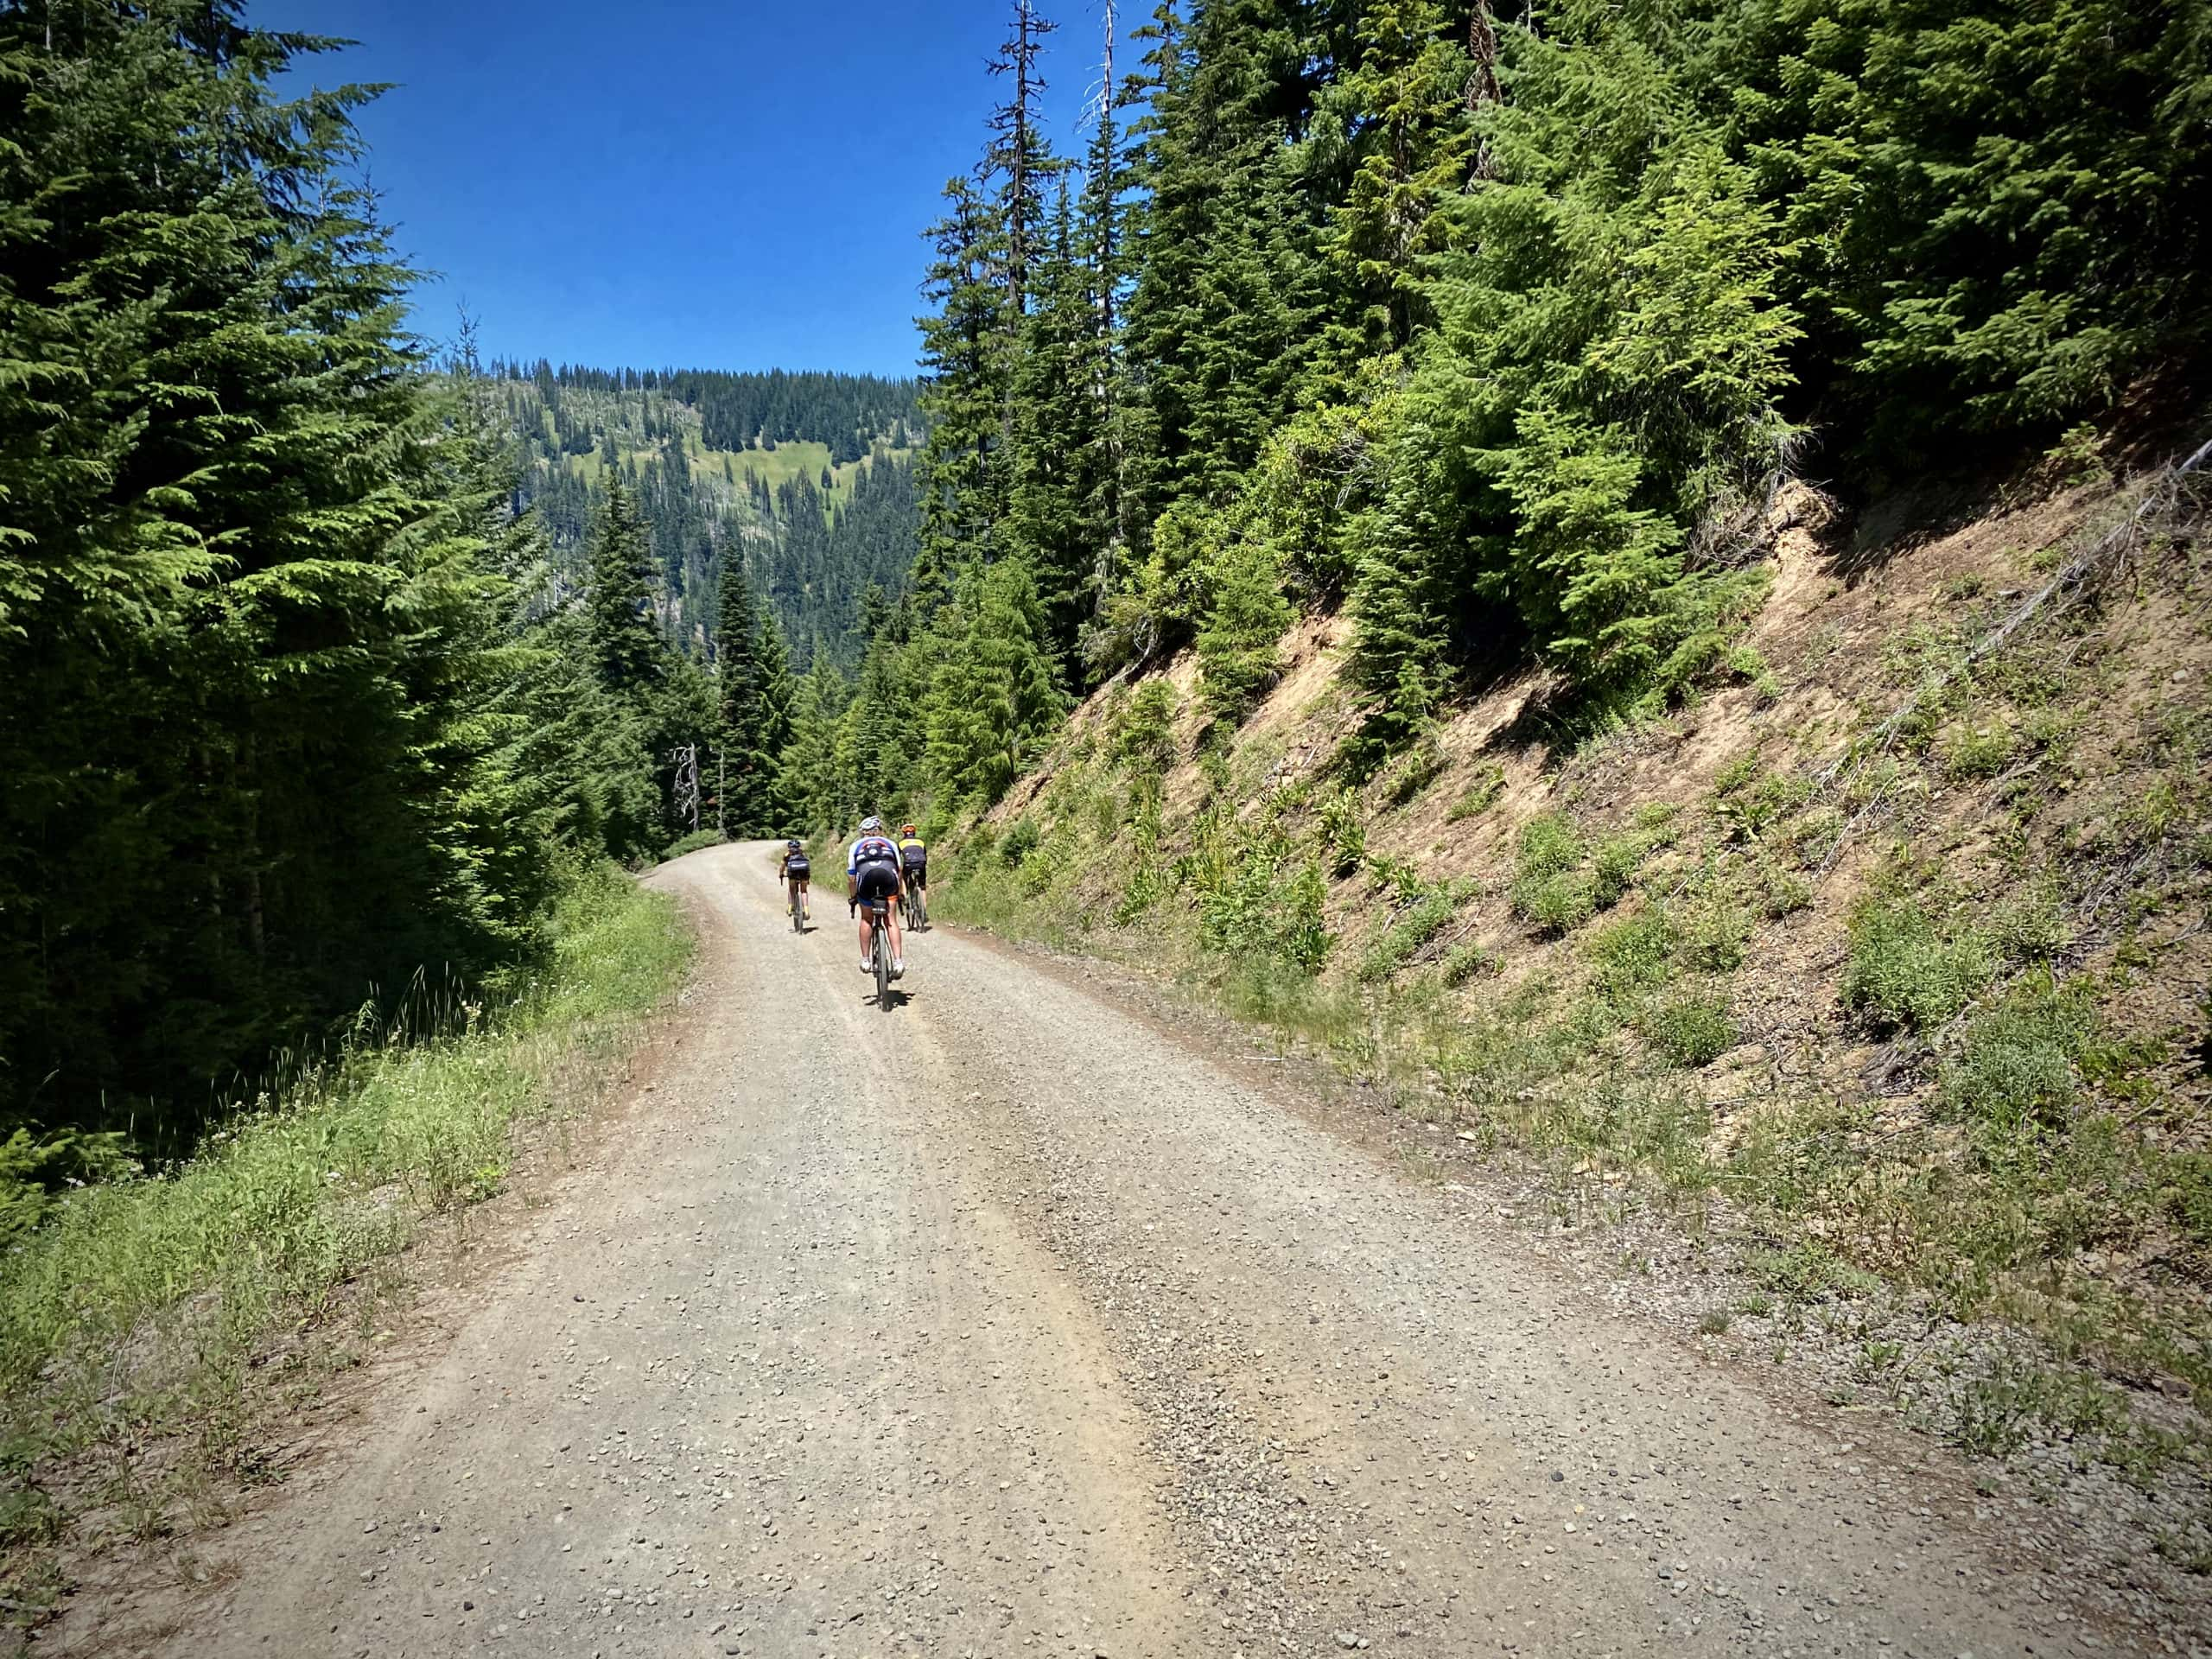 Cyclists descending the gravel portion of NF 23 in the Willamette National forest.